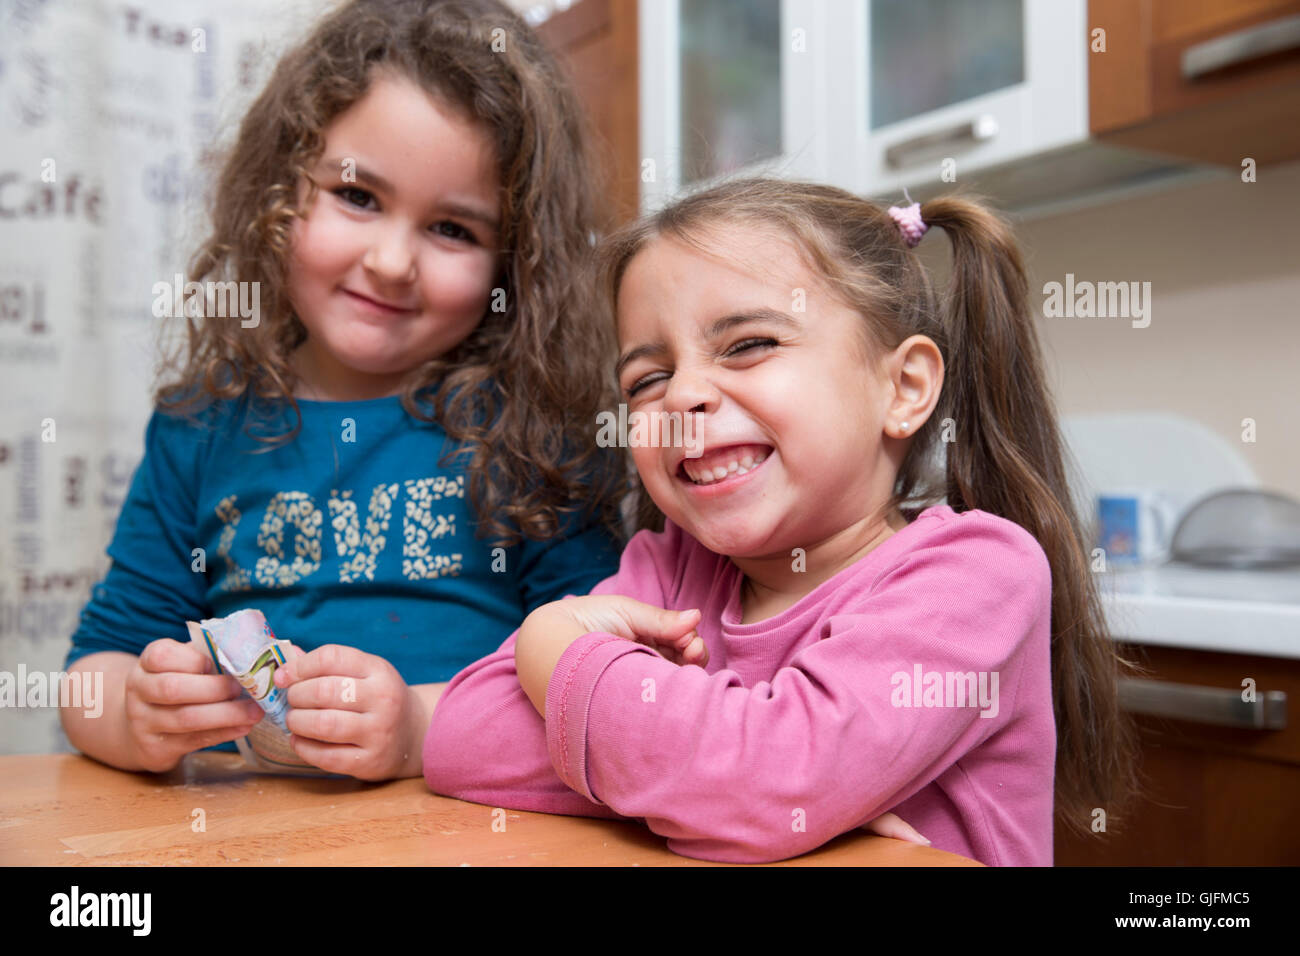 two cute kids smiling and making faces at camera in kitchen stock